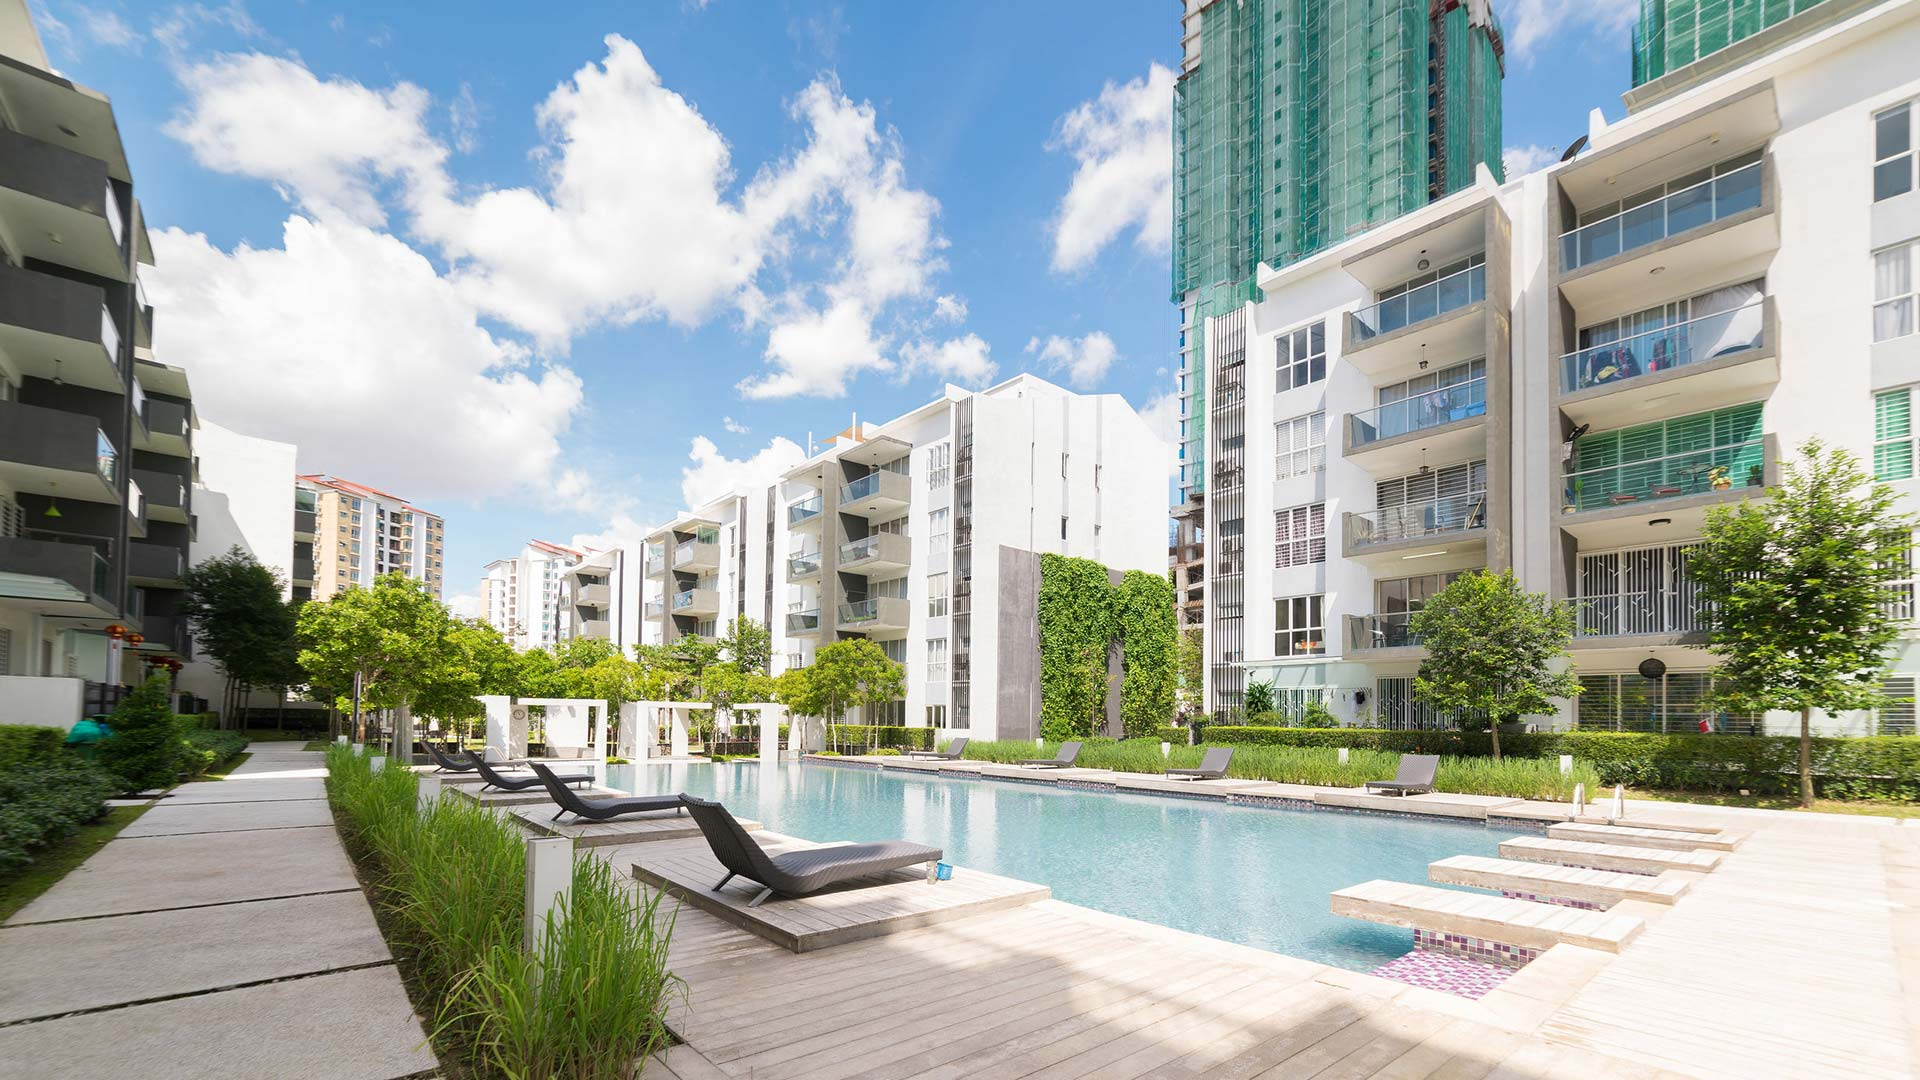 Buying a condo vs. renting: What's right for this stage in your life? |  Mortgage Rates, Mortgage News and Strategy : The Mortgage Reports